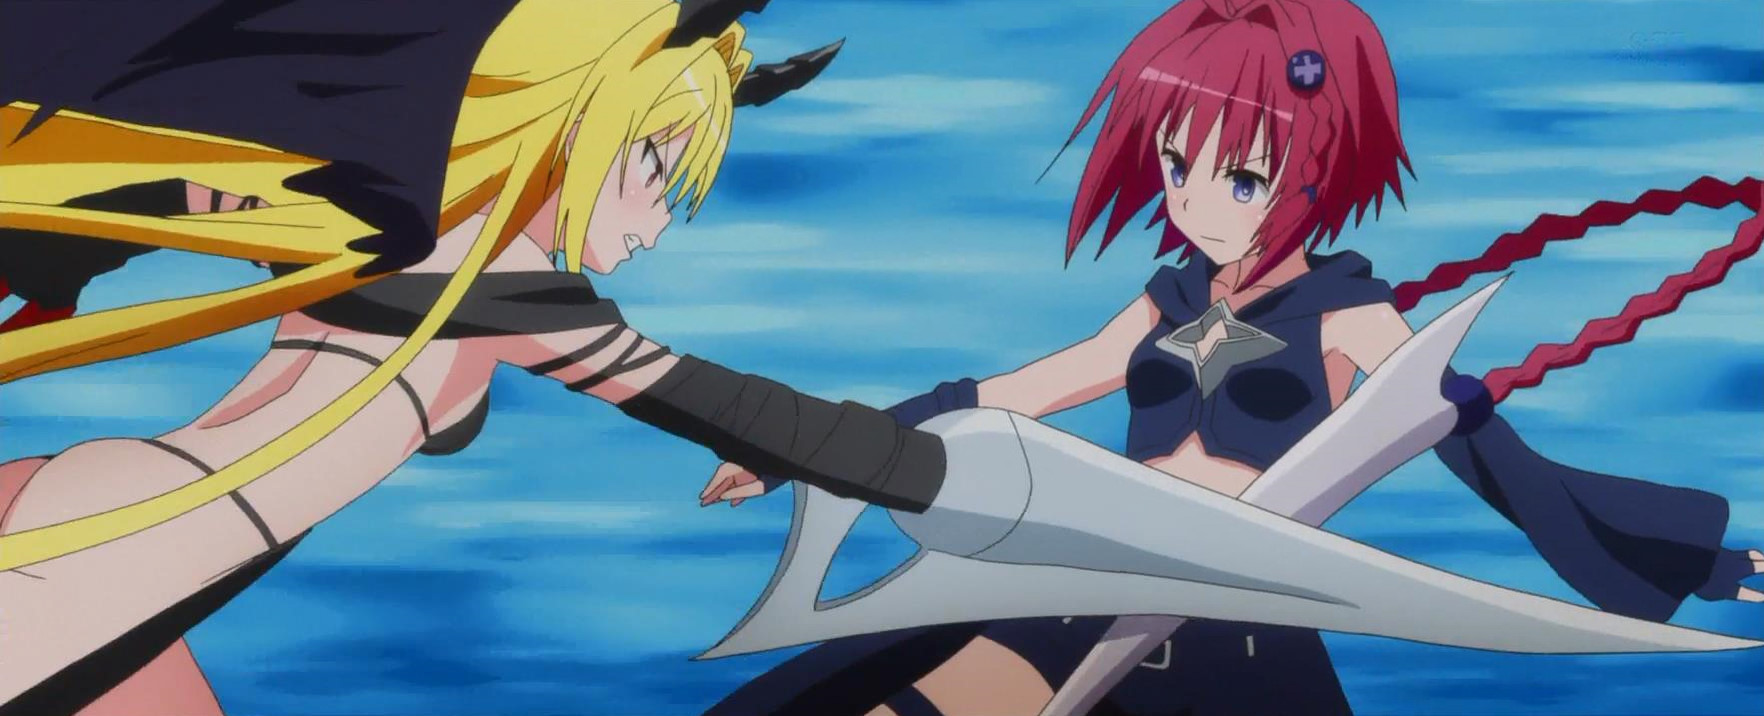 [Ohys-Raws] To Love-Ru Trouble - Darkness 2nd - 13v2 (BS11 1280x720 x264 AAC).mp4_snapshot_19.24_[2015.10.28_18.33.34]_stitch